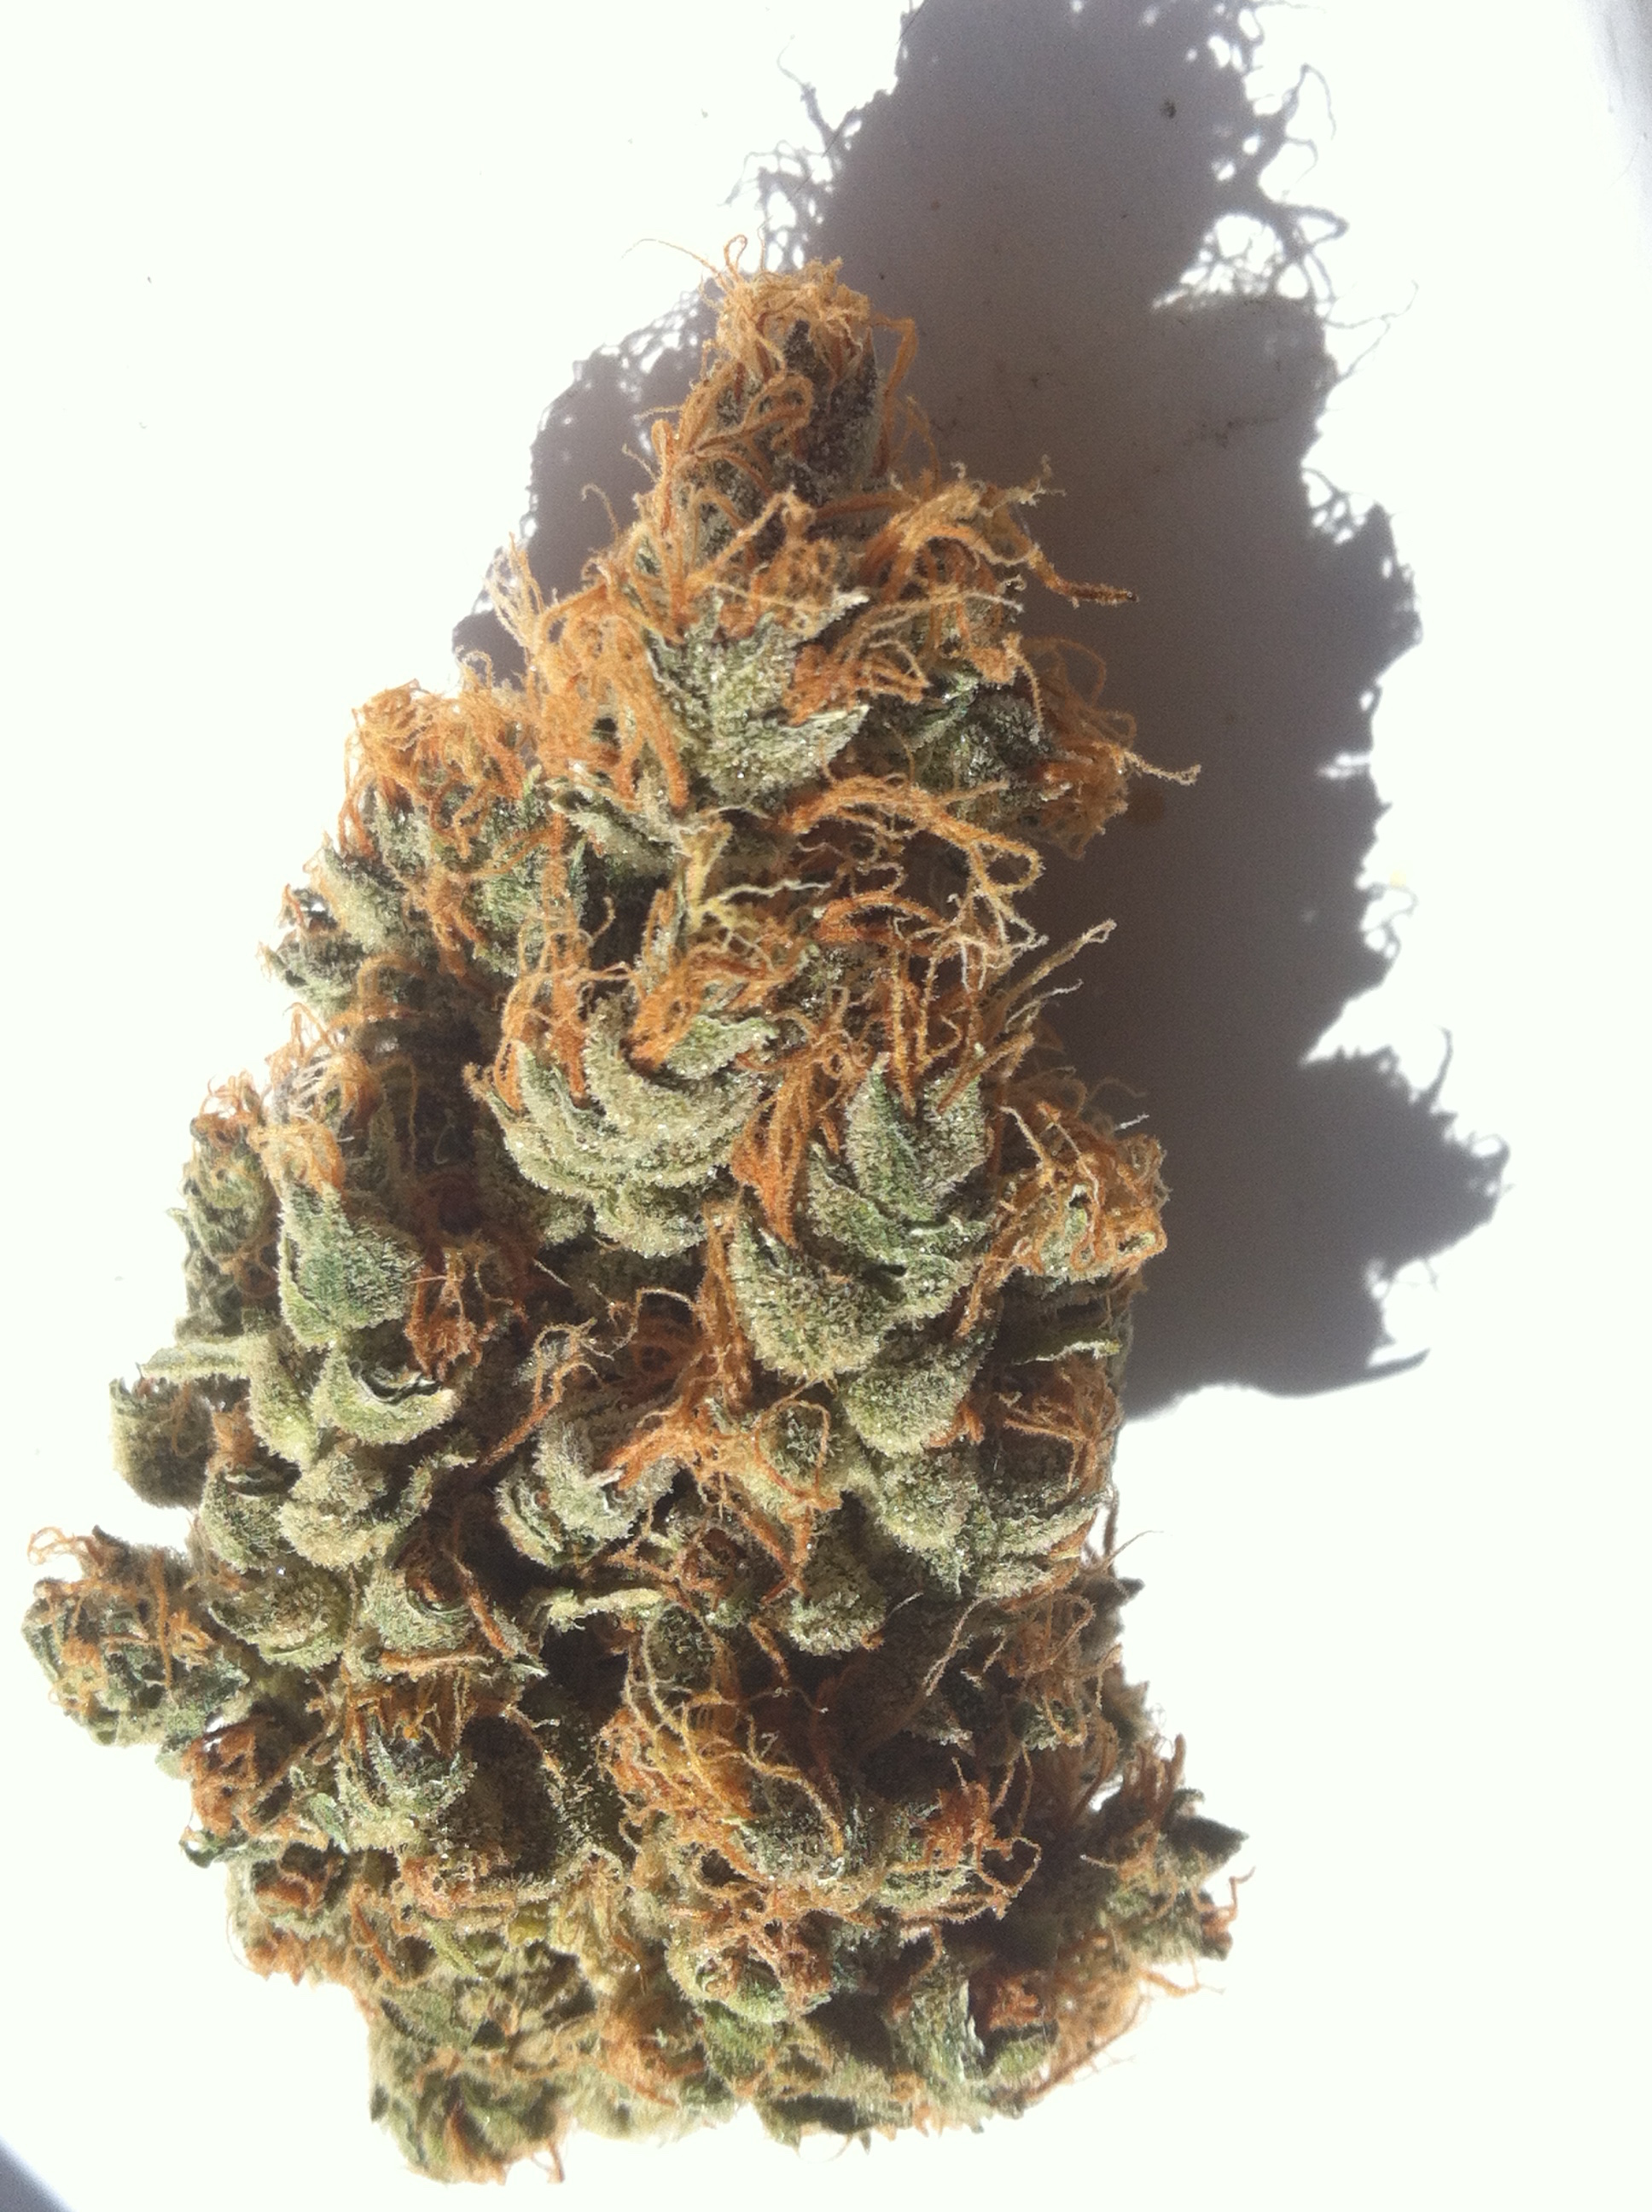 frosty buds and orange hair